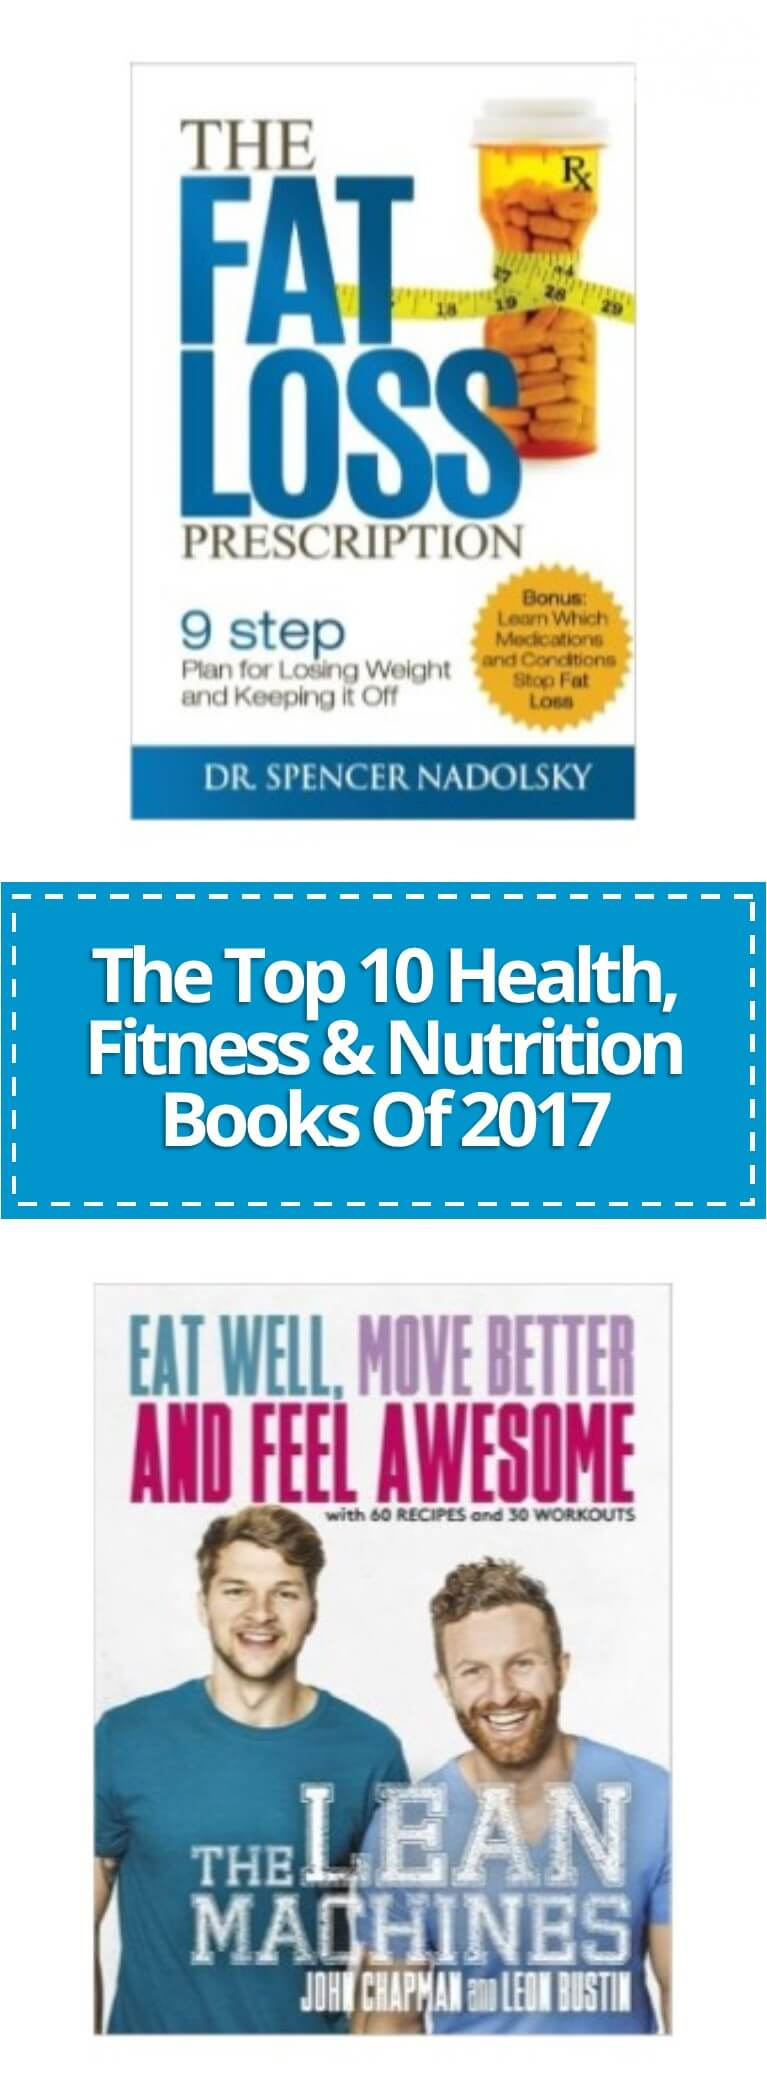 In this article we've listed our favourite fitness and nutrition books of 2017.